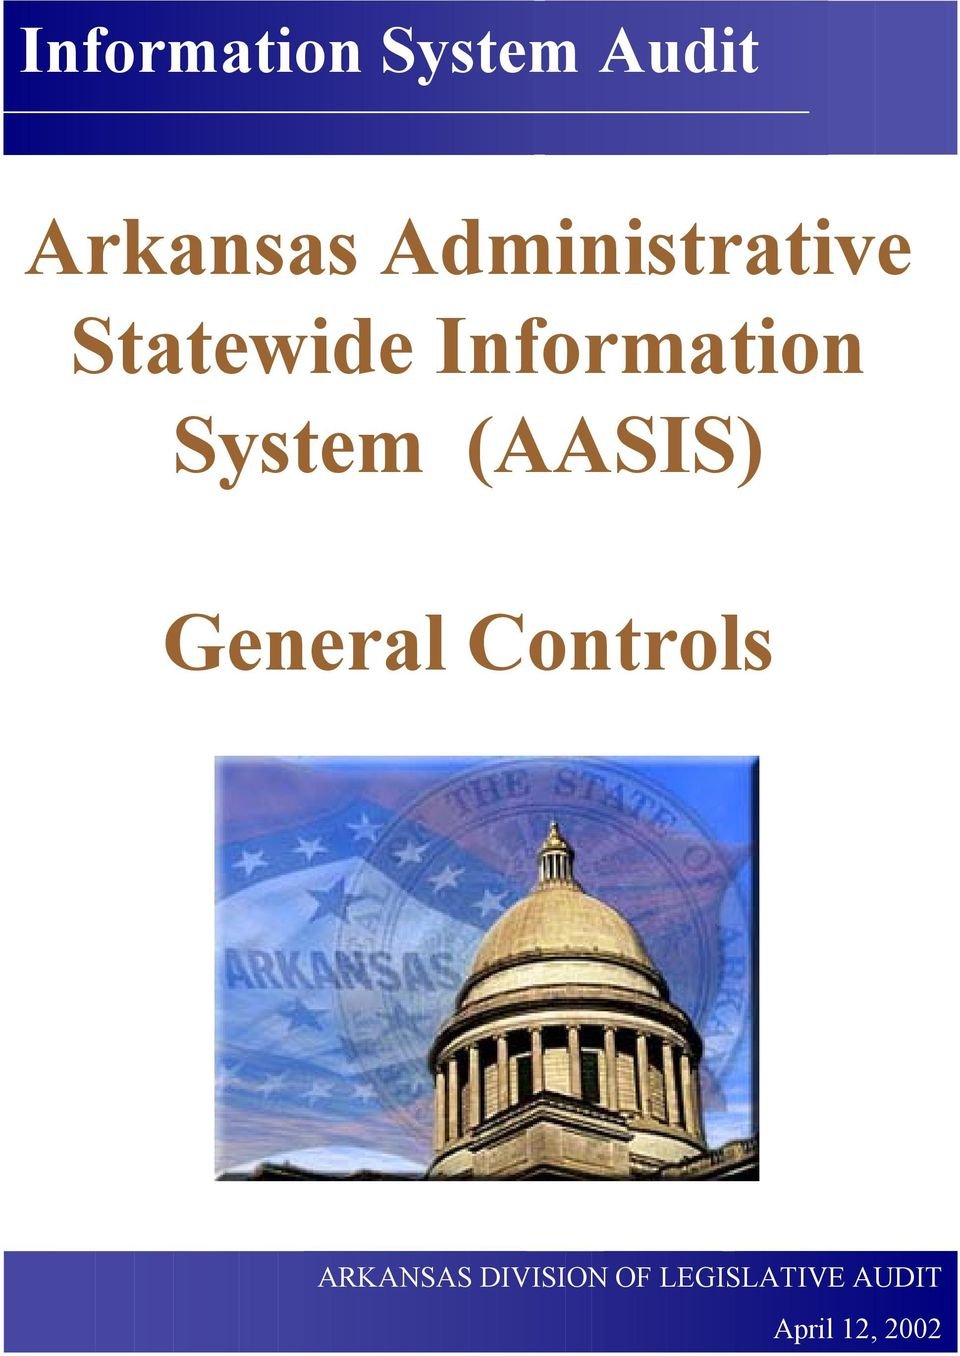 System (AASIS) General Controls